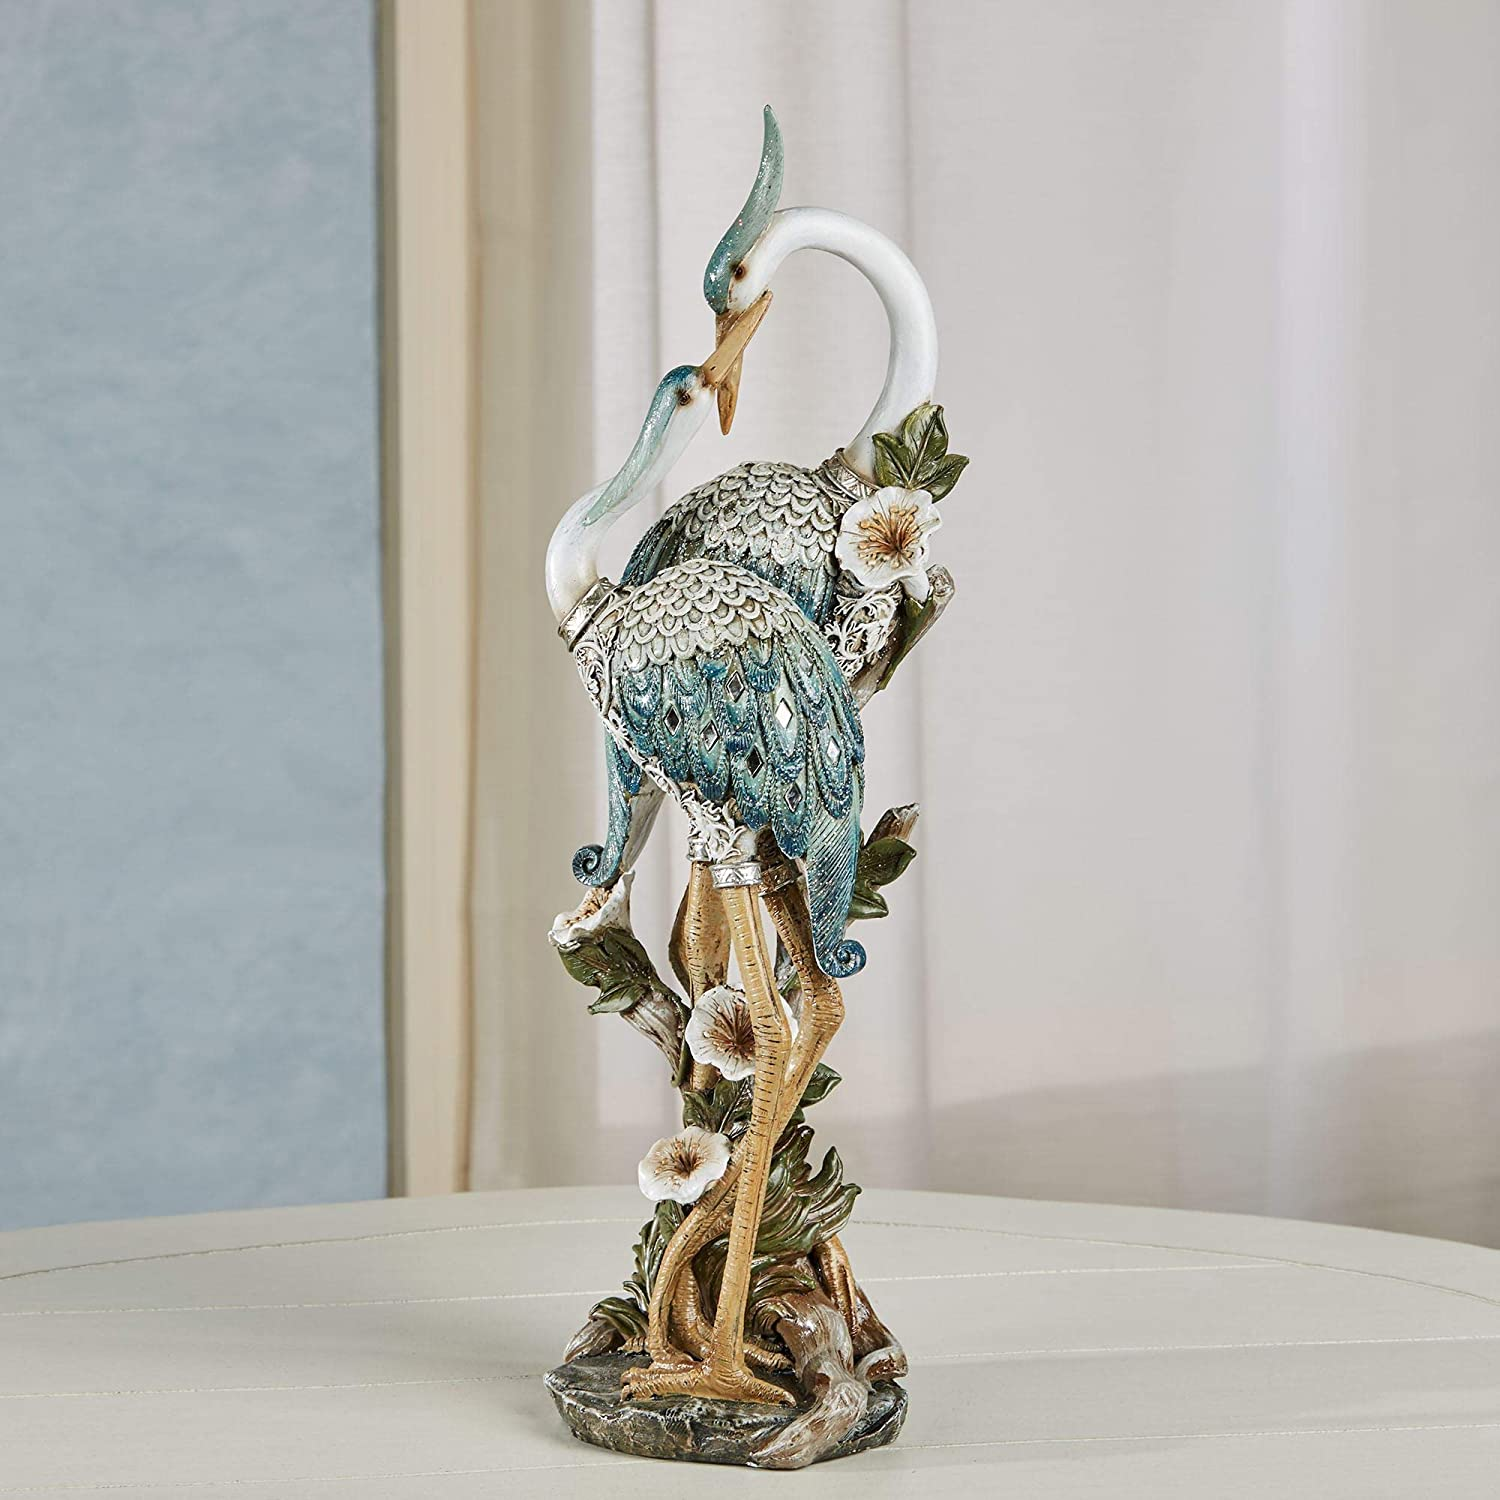 Devoted Cranes Table Sculpture Teal - Made of Resin Coastal Shorebirds - Diamond Mirror Insets, Glitter Accents - Flowers, Vining Leaves Base - Measures 5 Inches Wide, 16 Inches High